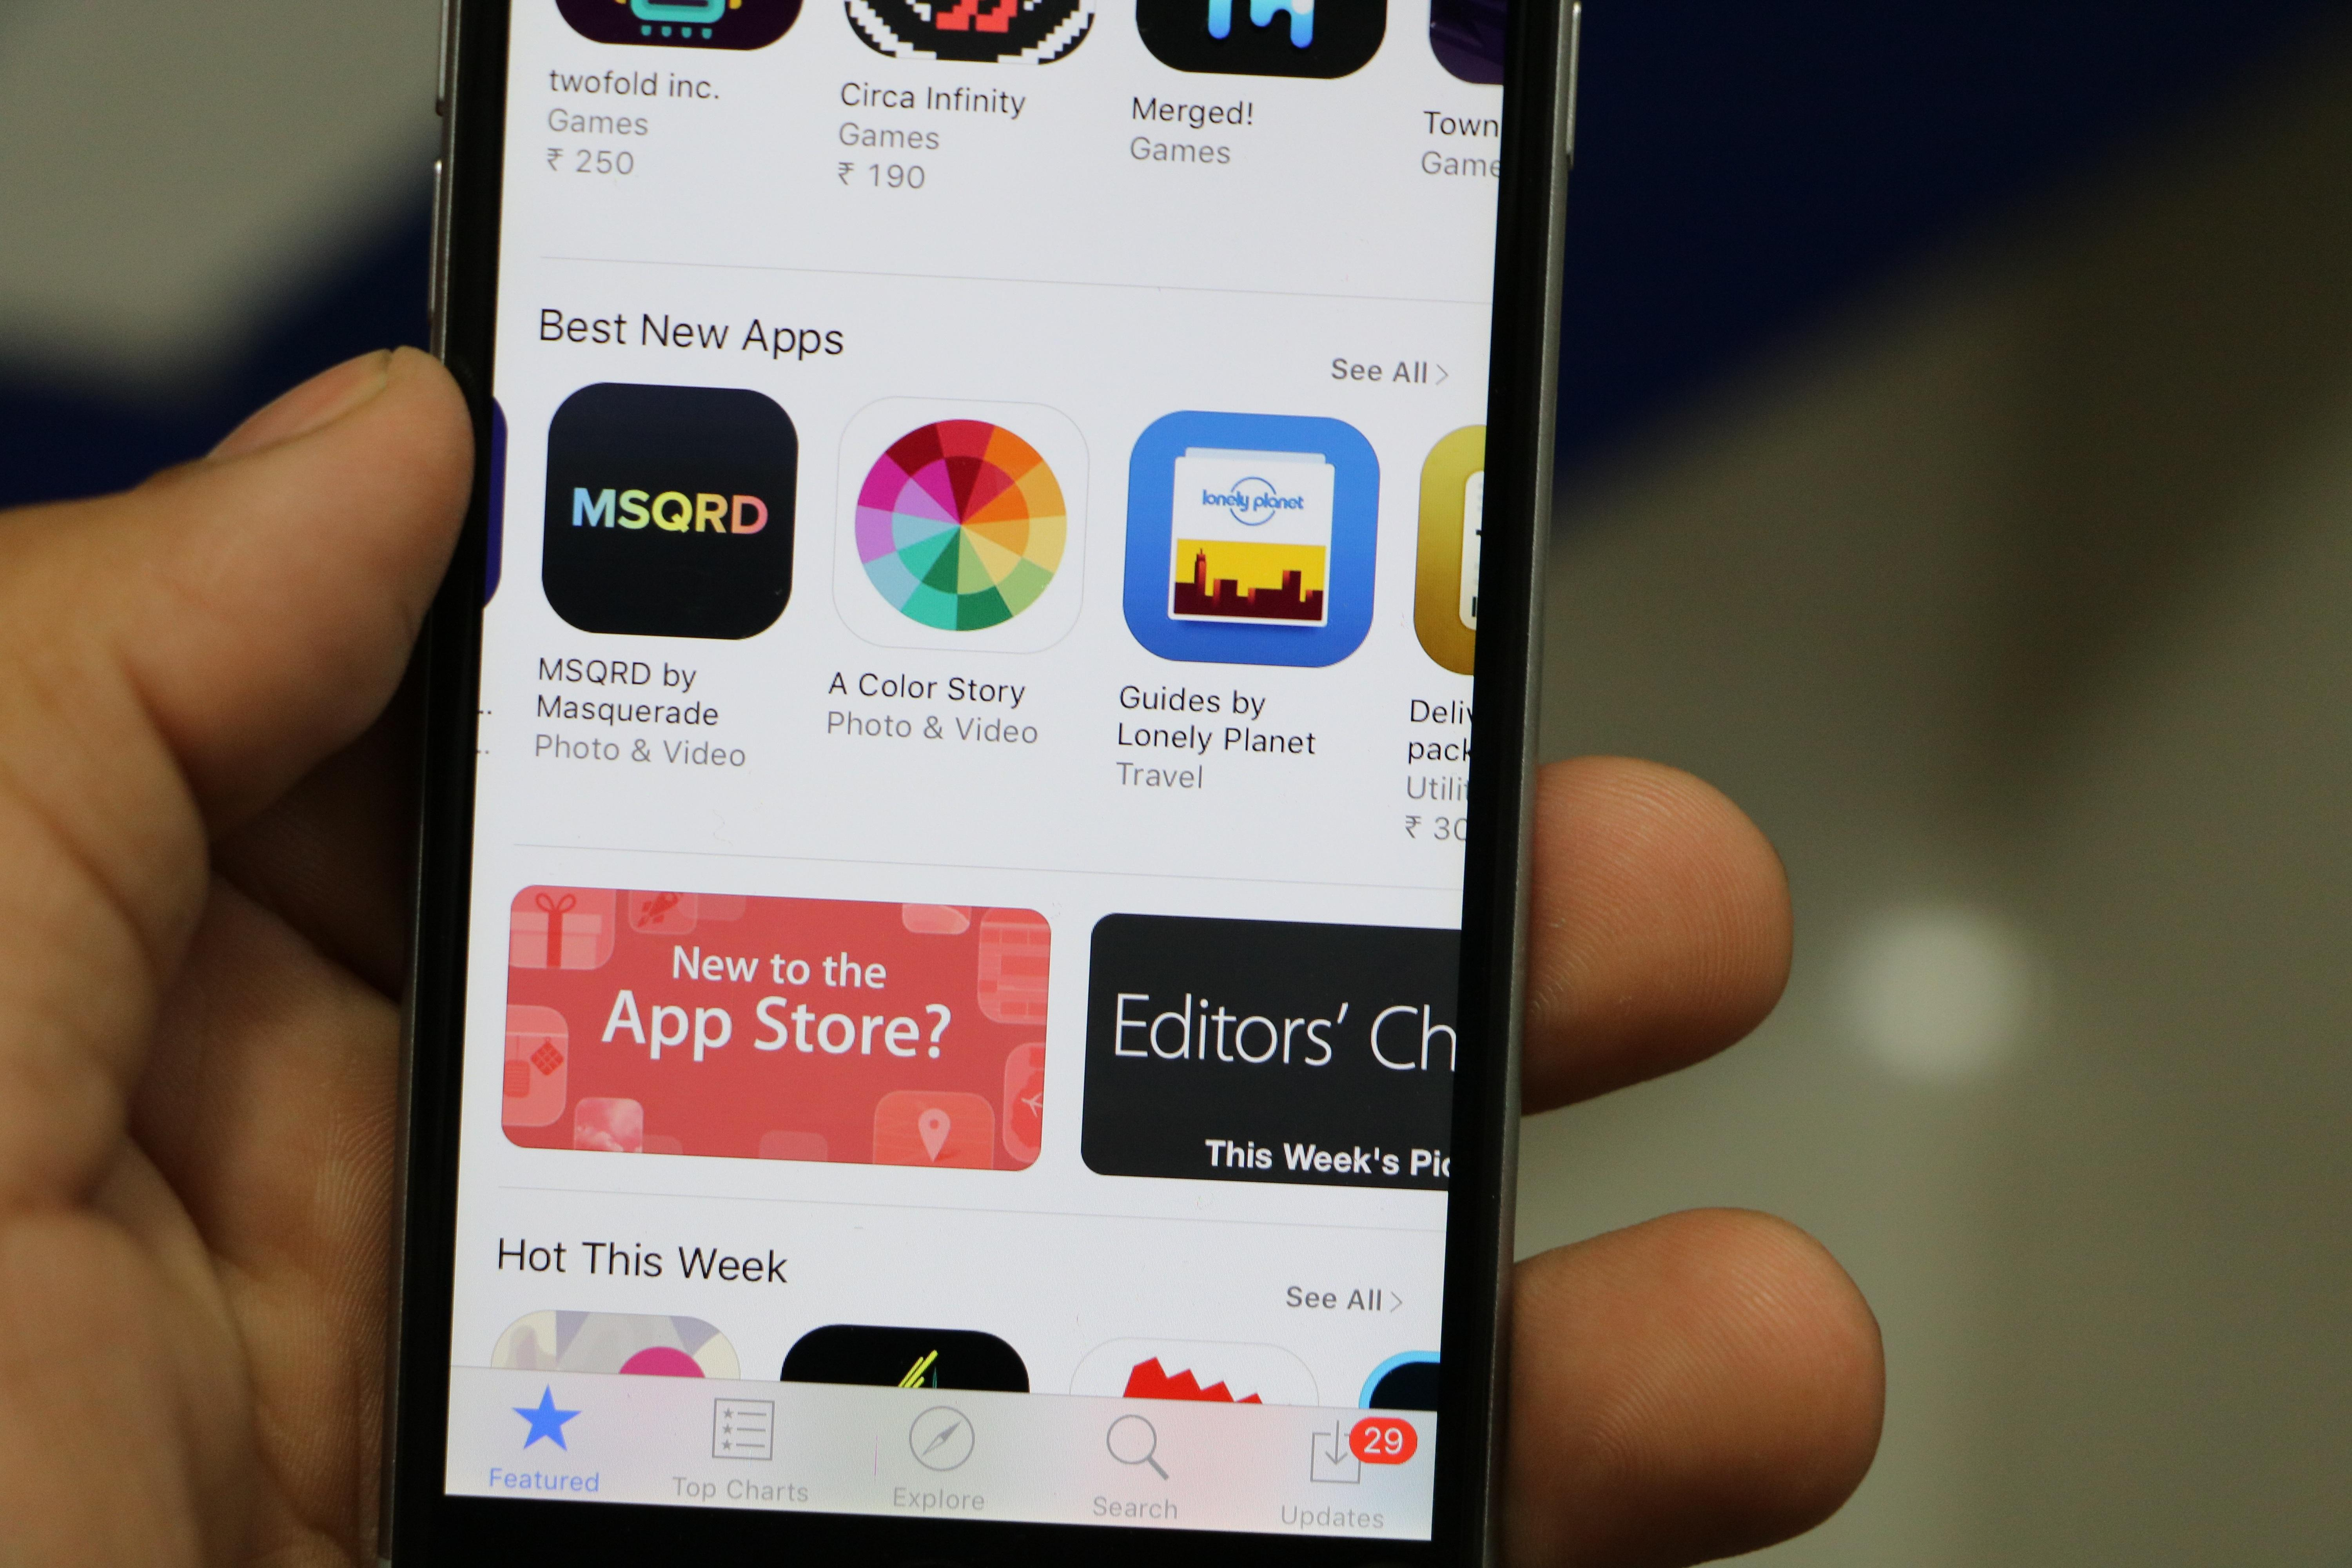 Users in Iran are no longer able to access the App Store